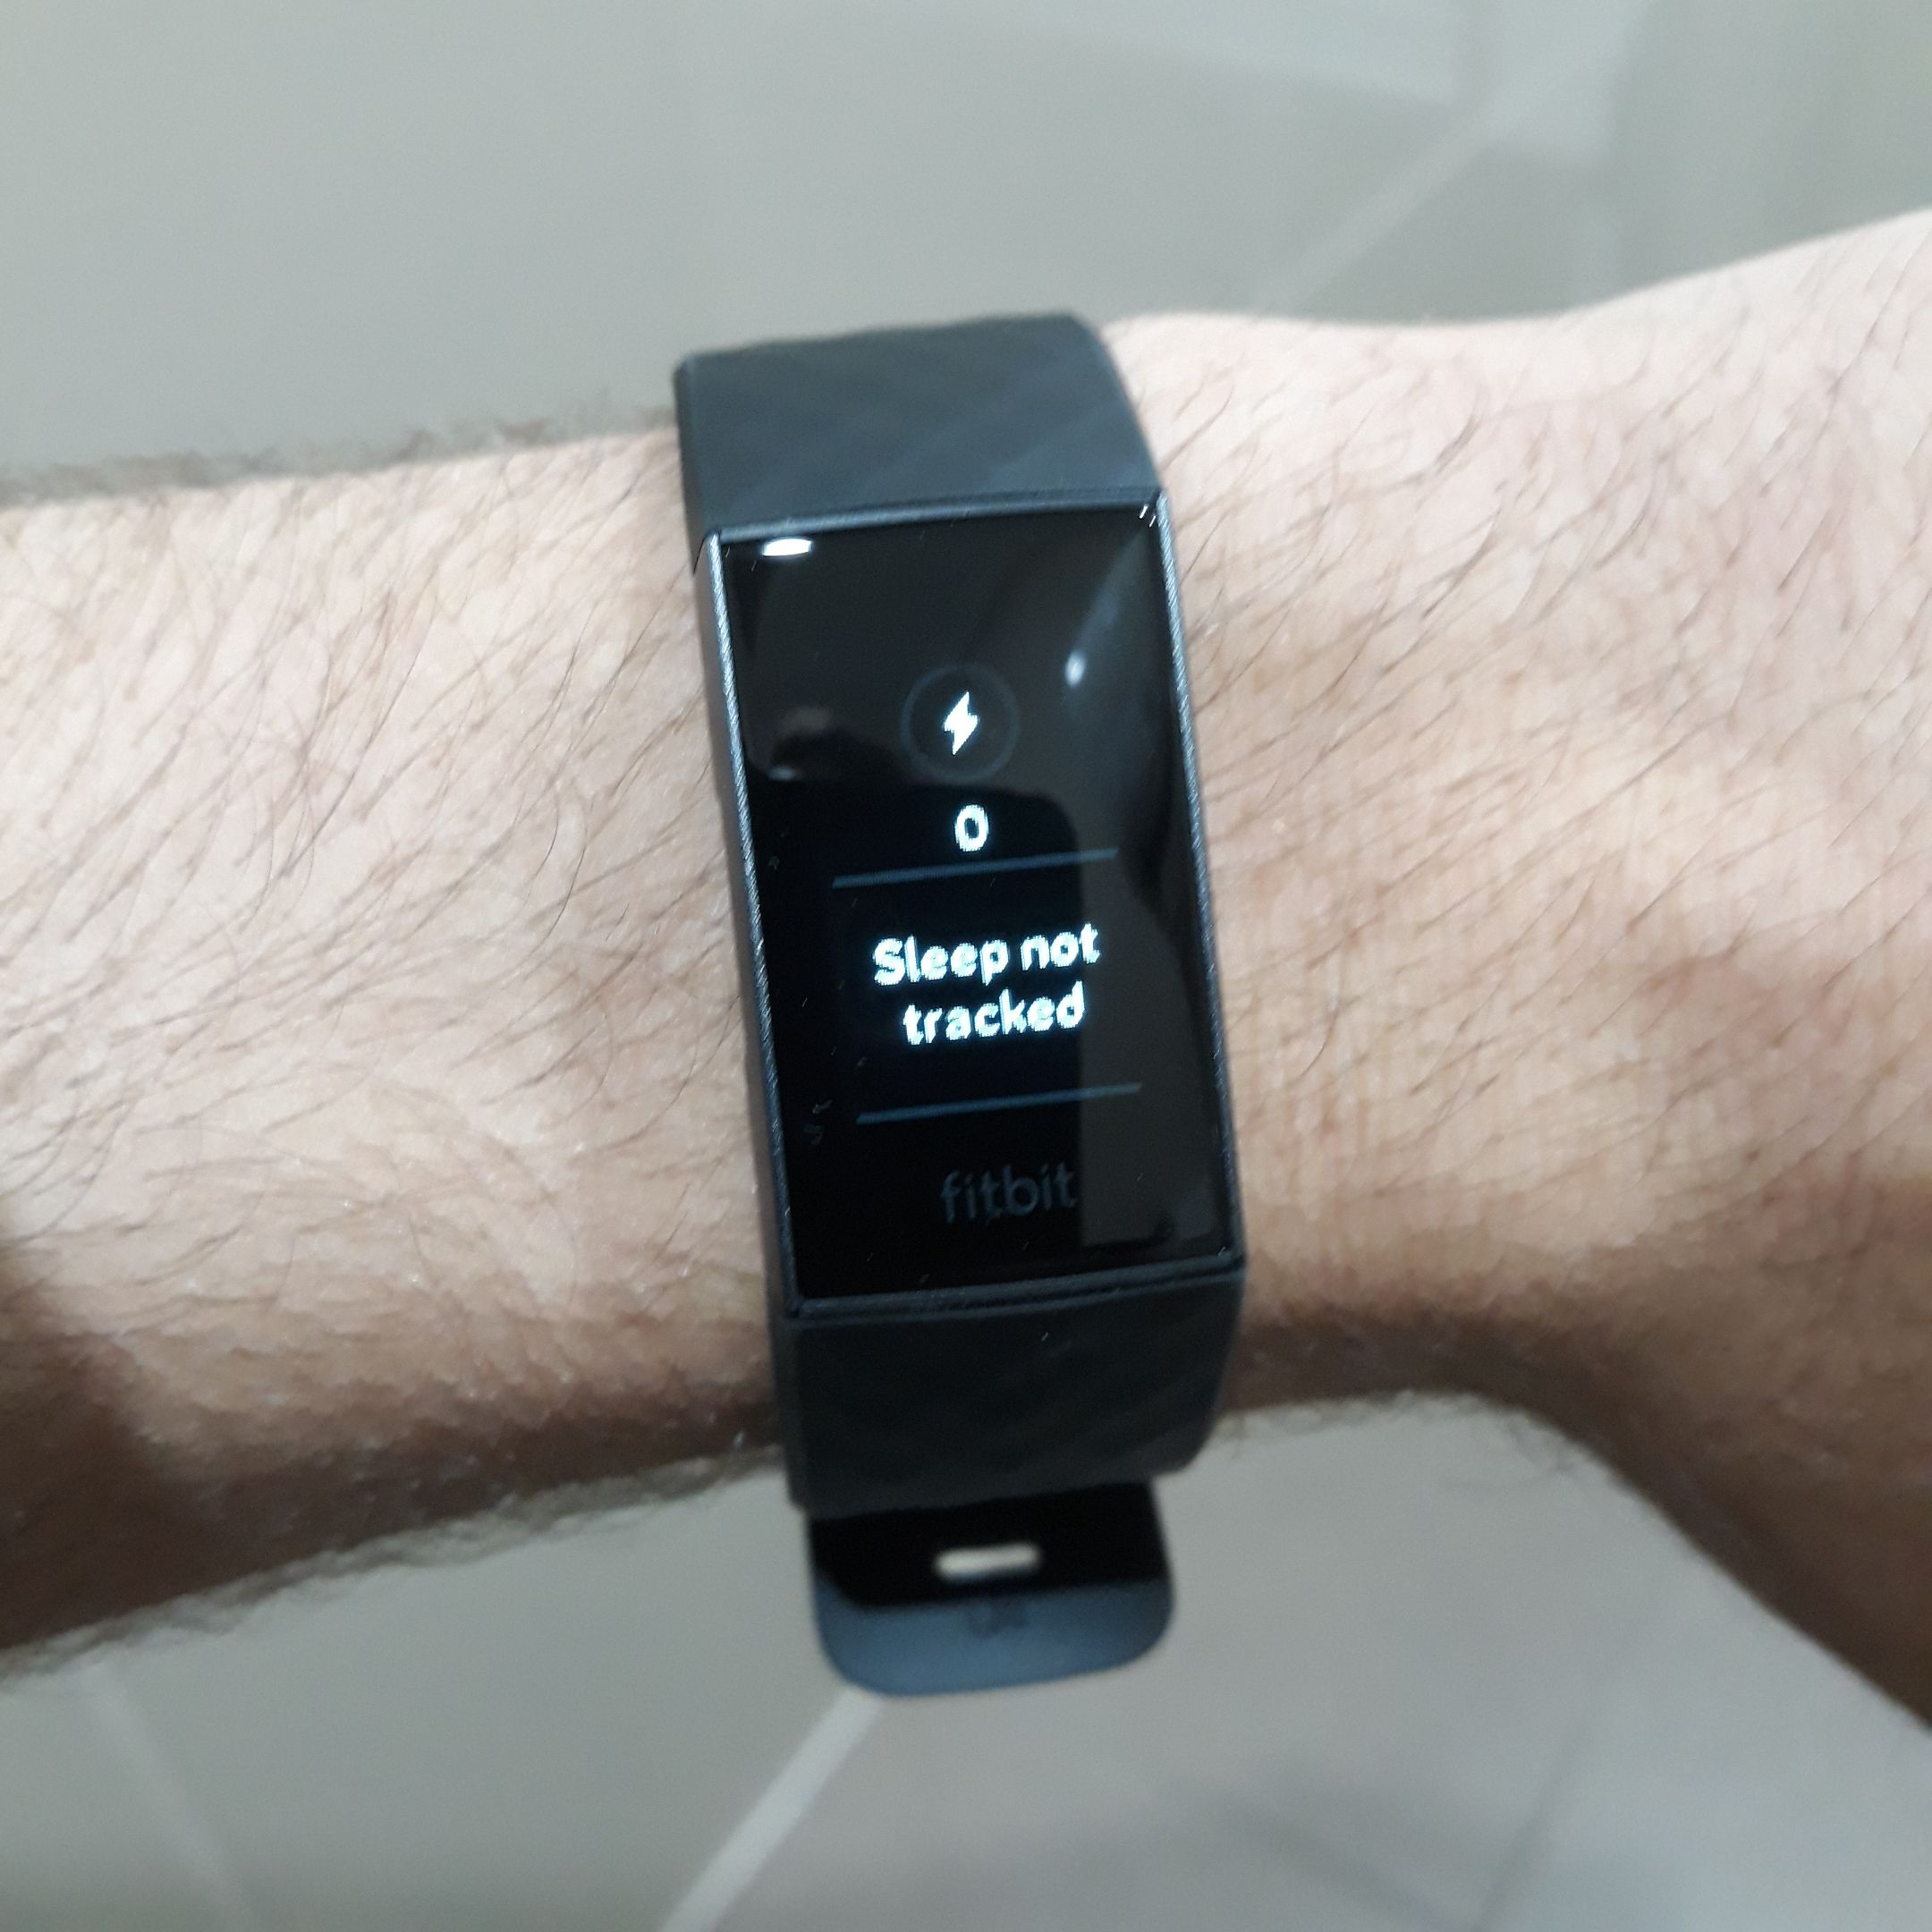 Charge 3 saying Sleep is not tracked - Fitbit Community